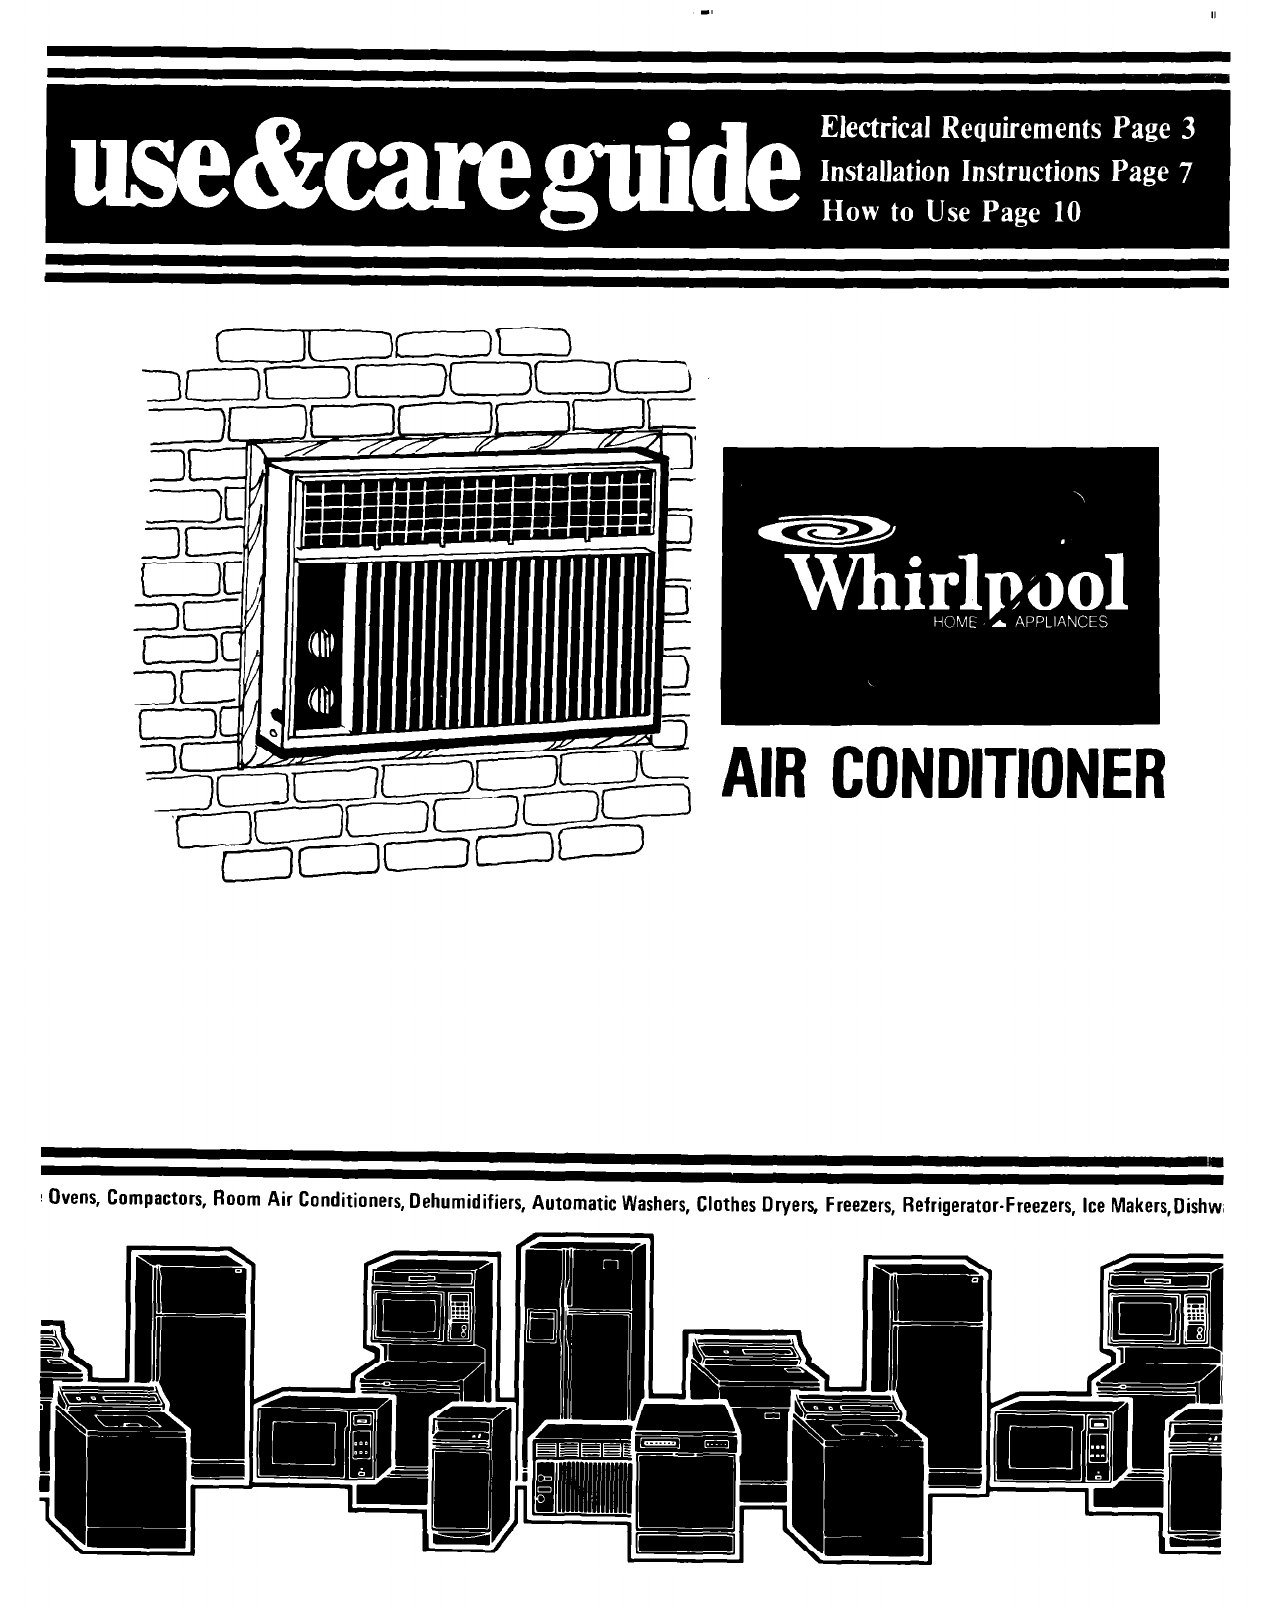 Whirlpool Window Air Conditioner Wiring Diagram For Ac Manual Acs088gpw Noblexiluswhirlpool Models